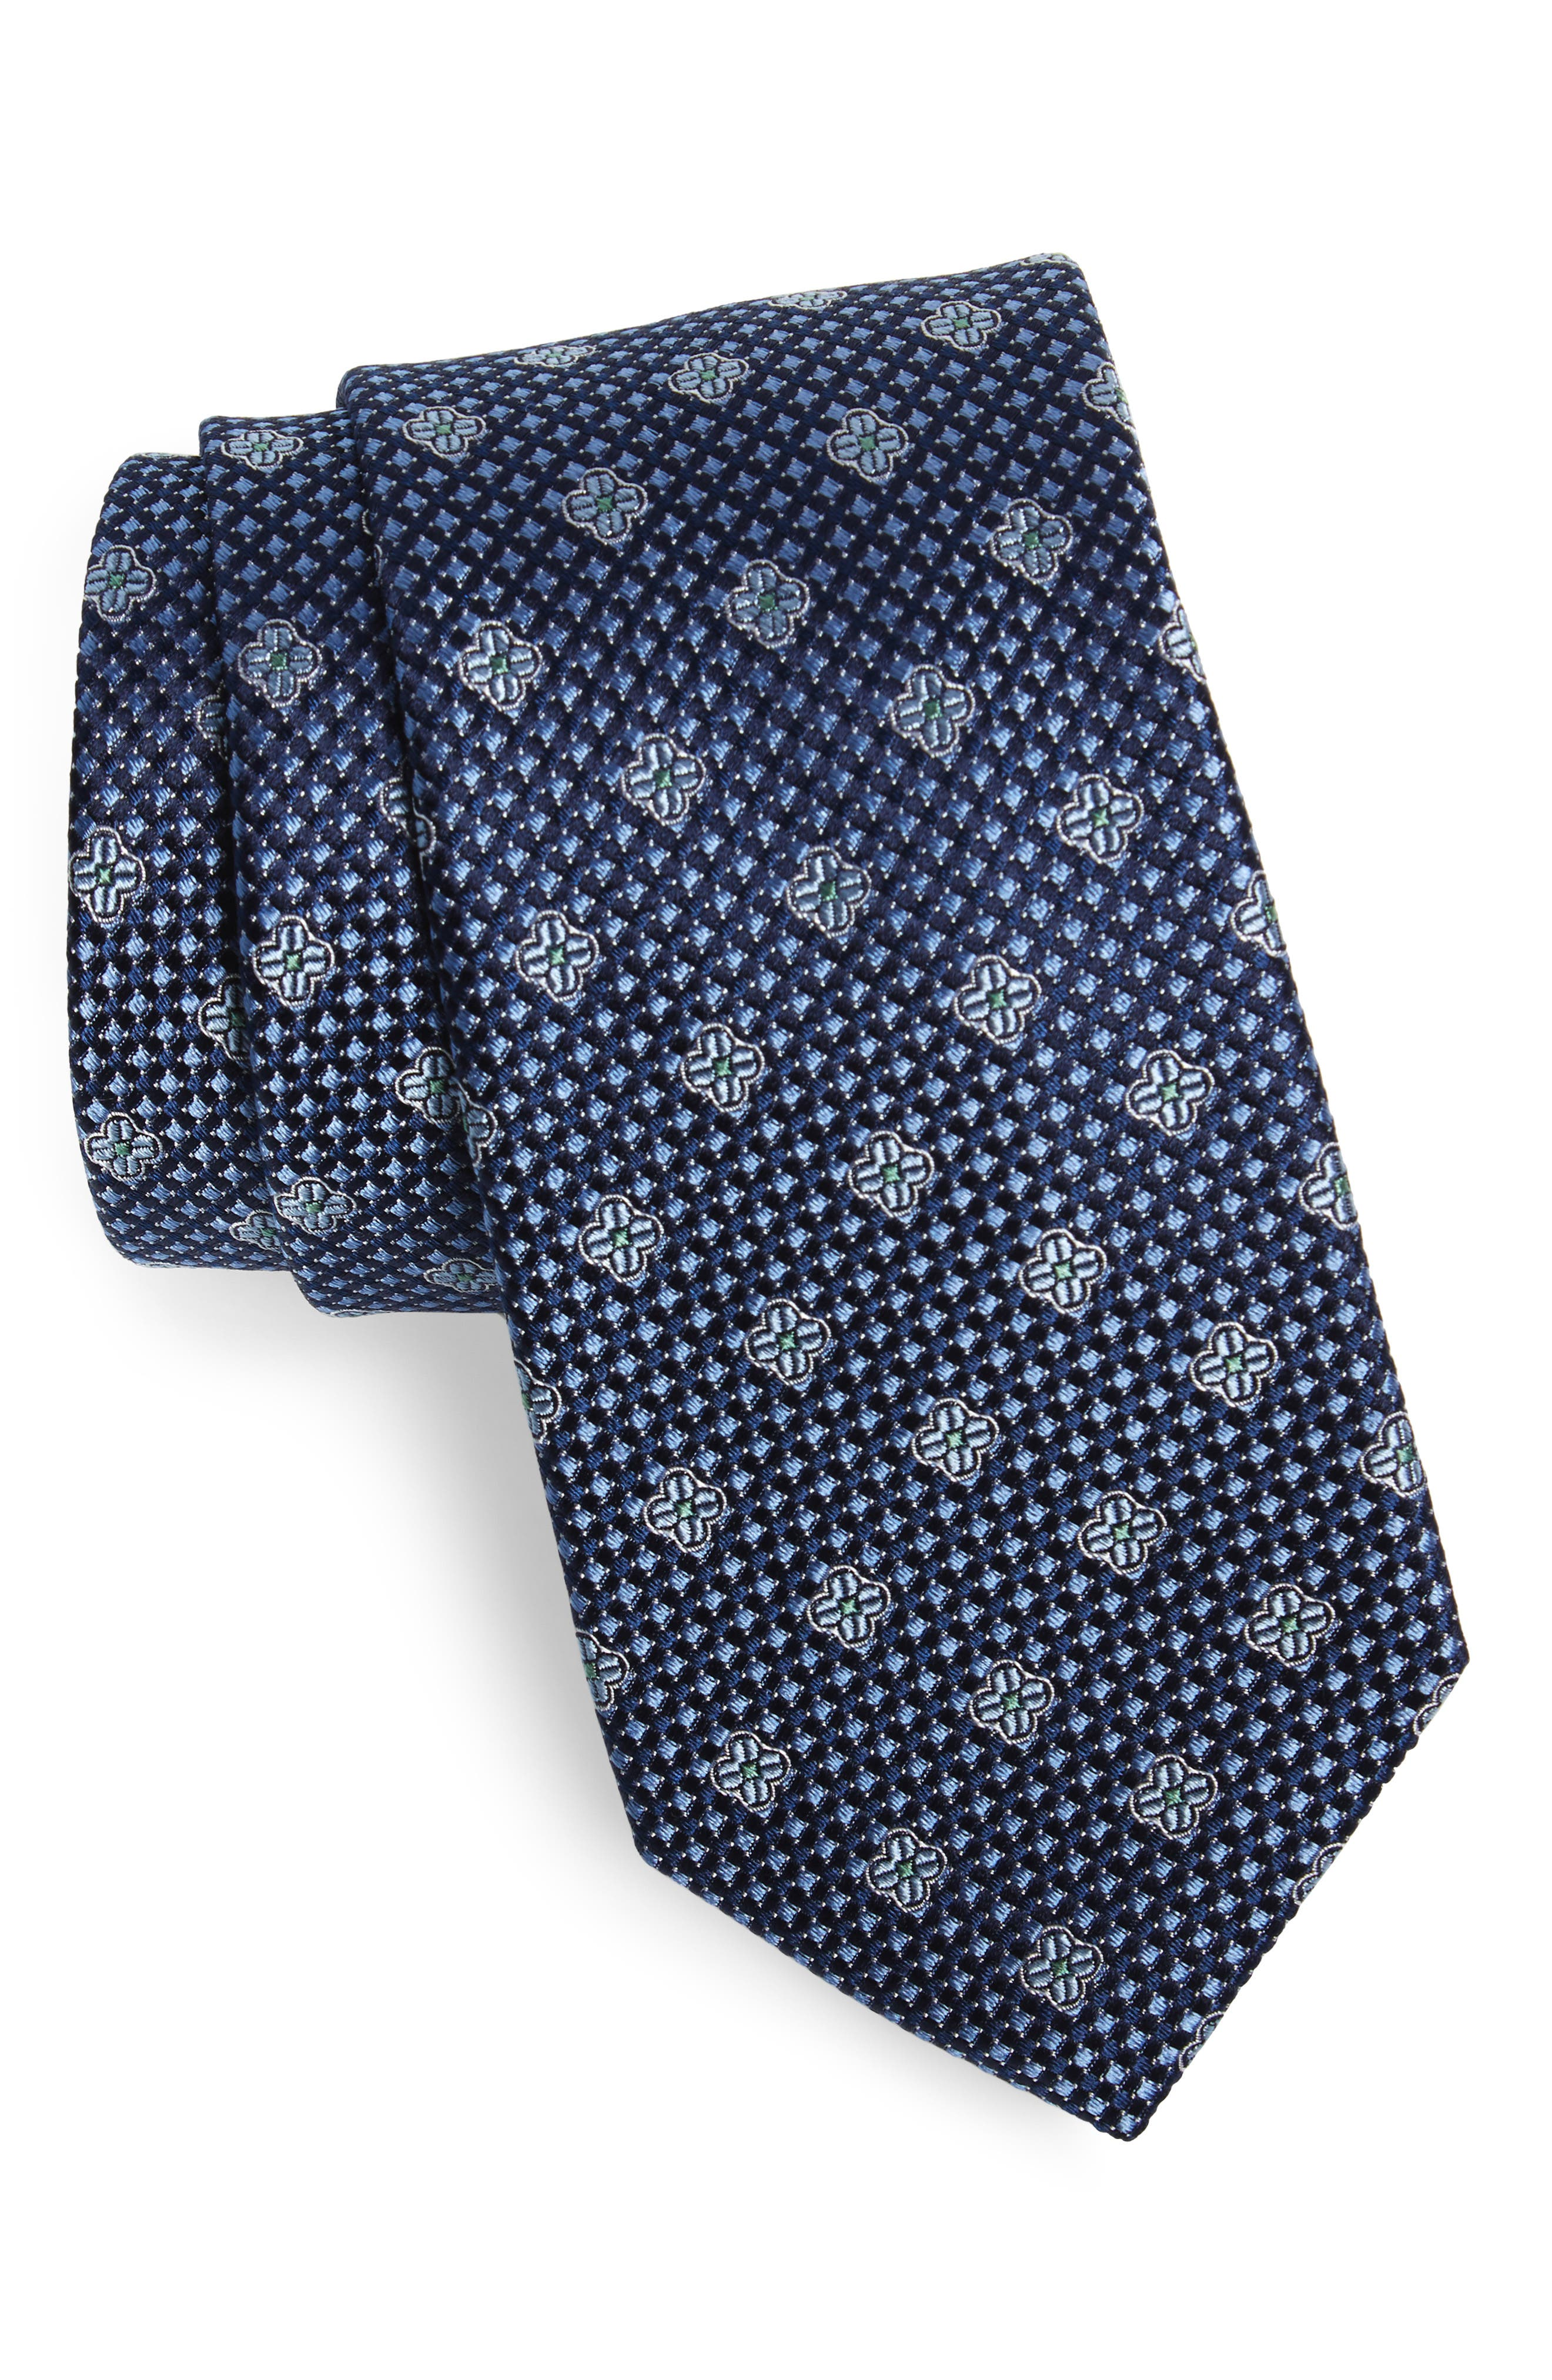 Textured Floral Silk Tie,                             Main thumbnail 1, color,                             Navy